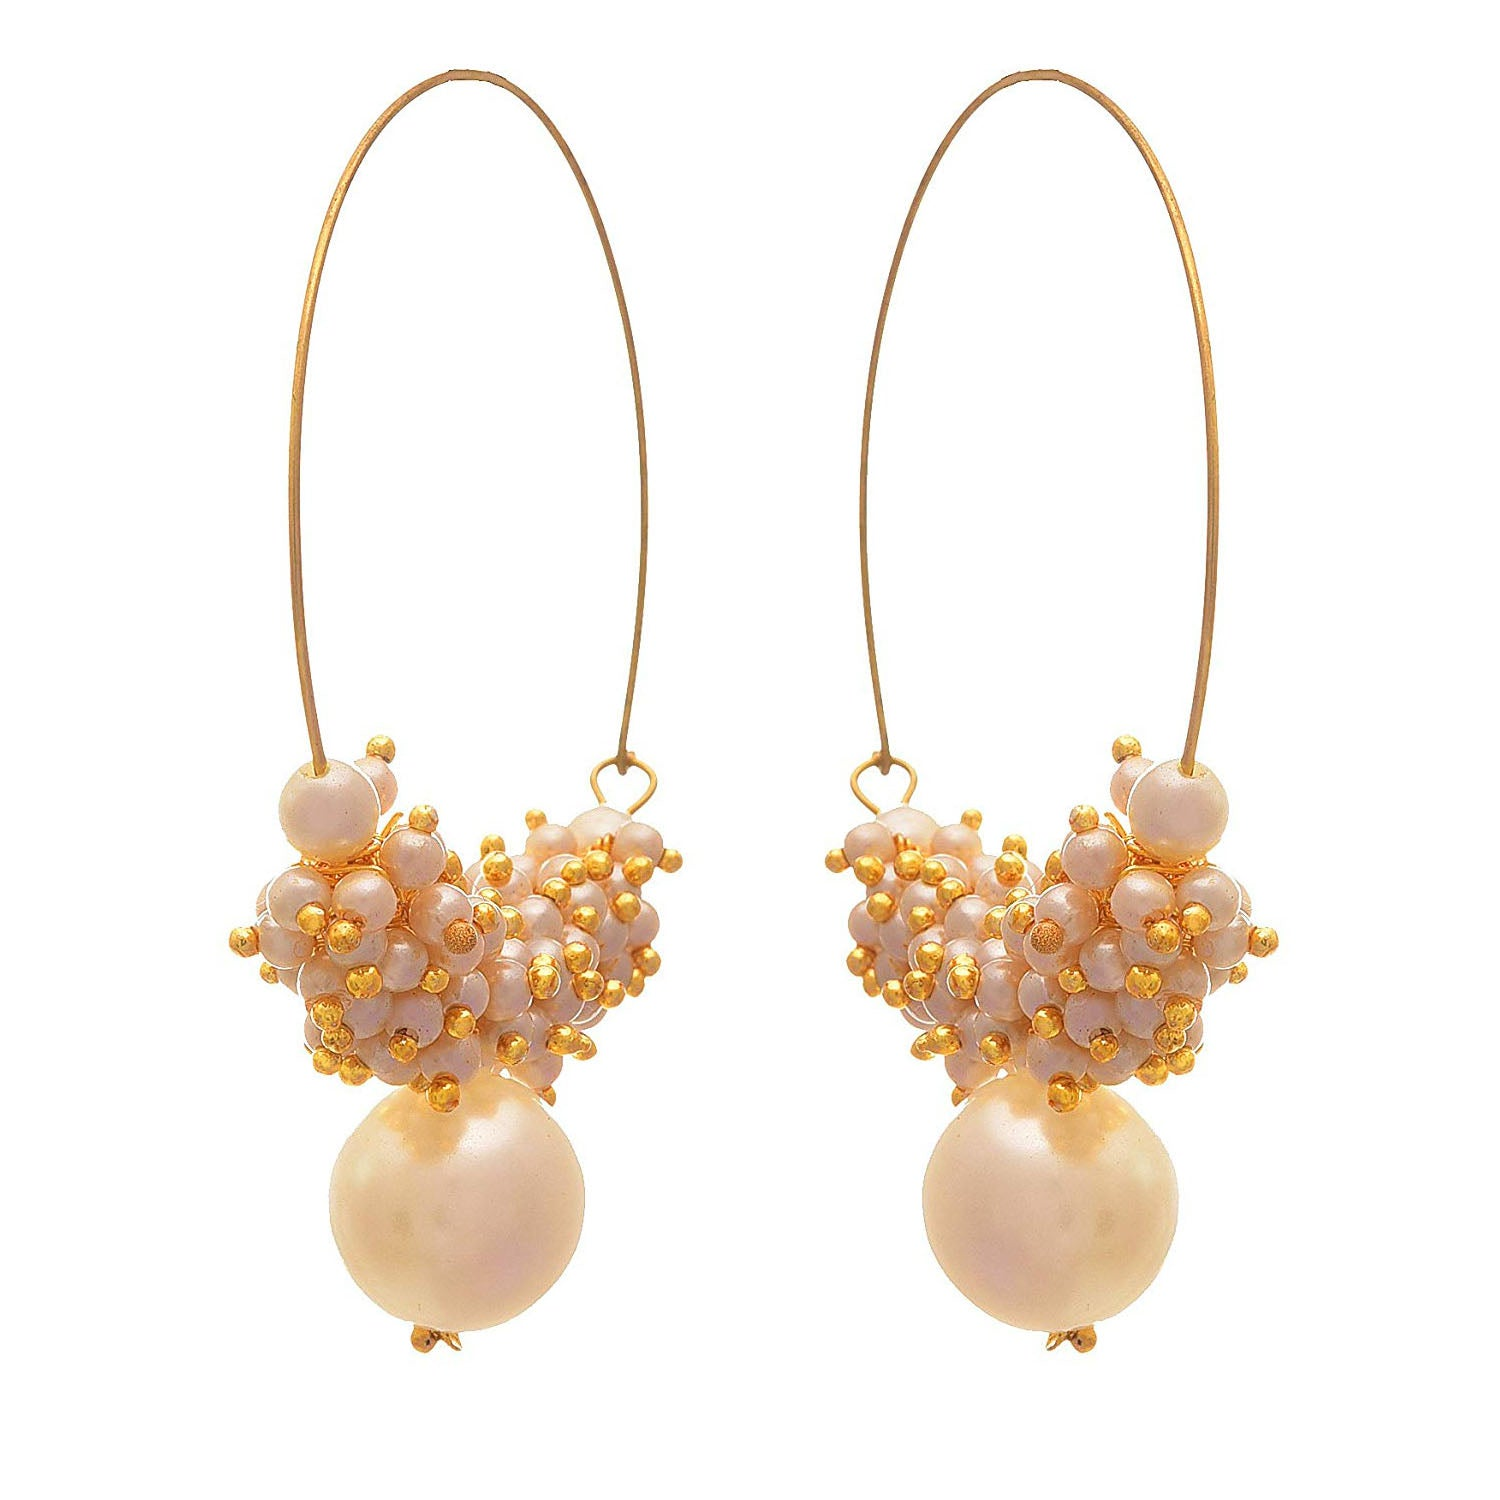 JFL - Traditional Ethnic One Gram Gold Plated Pearls Designer Bali Earring for Women & Girls.